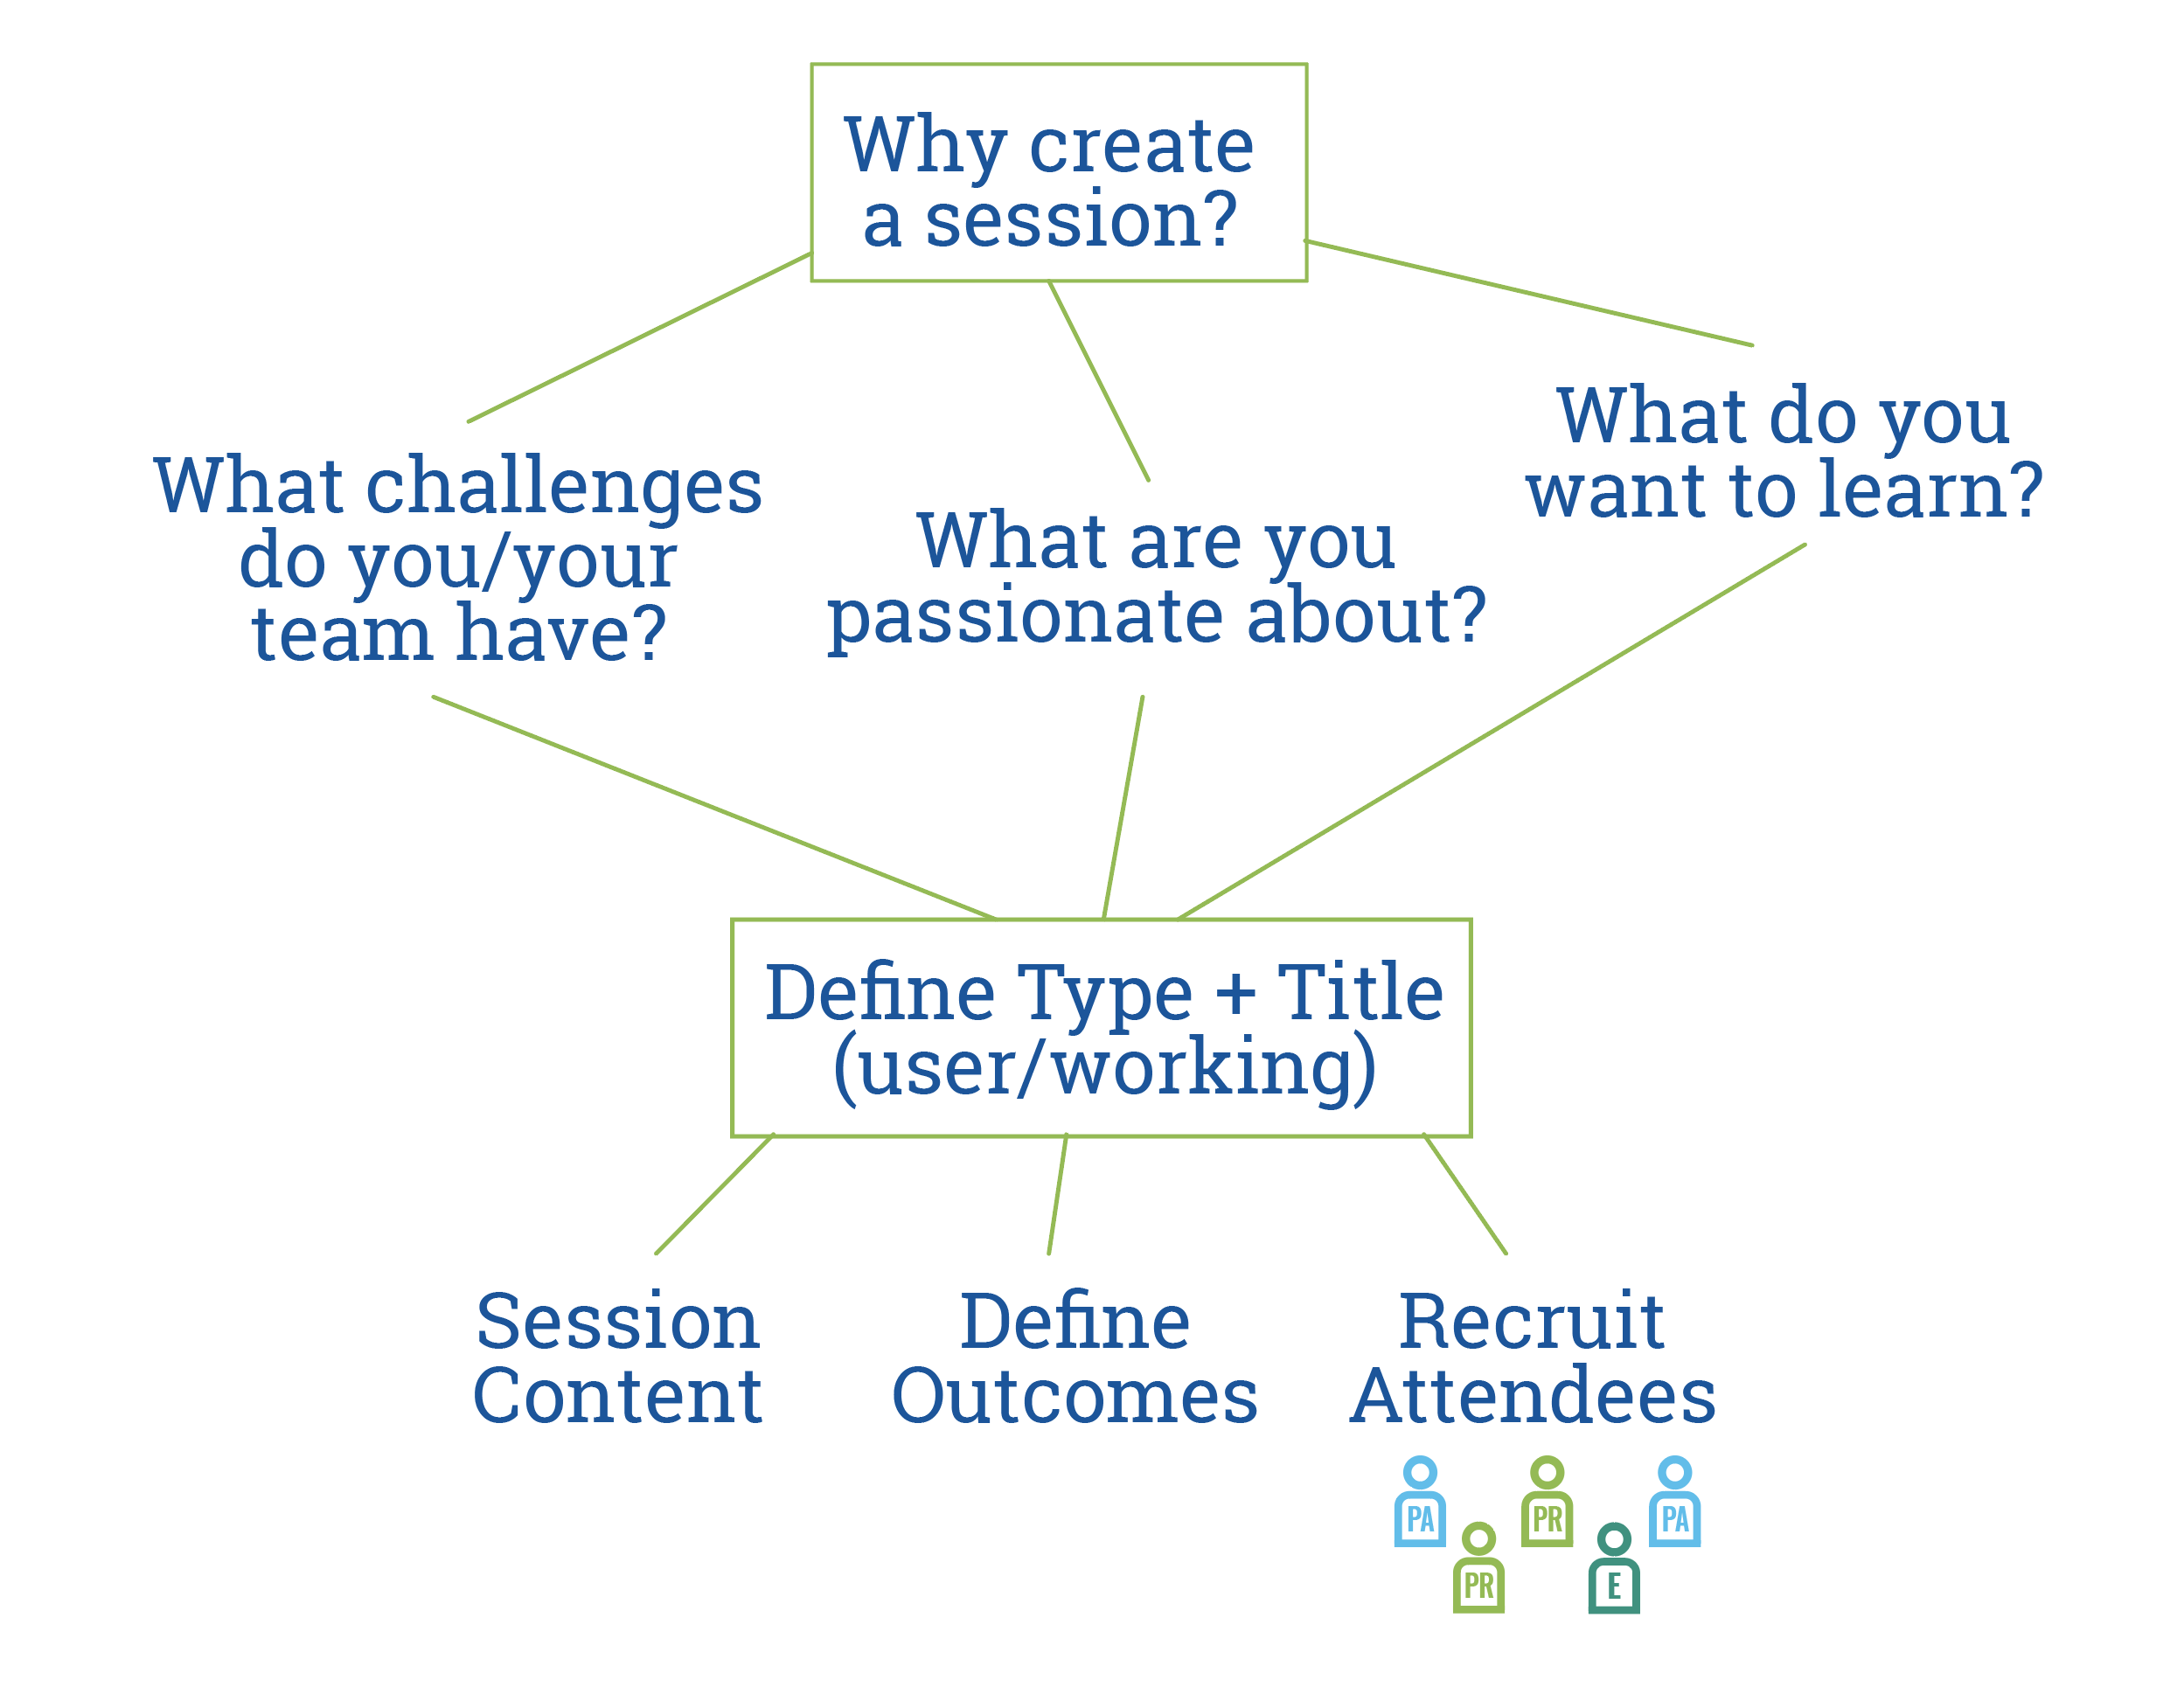 Why create a session?